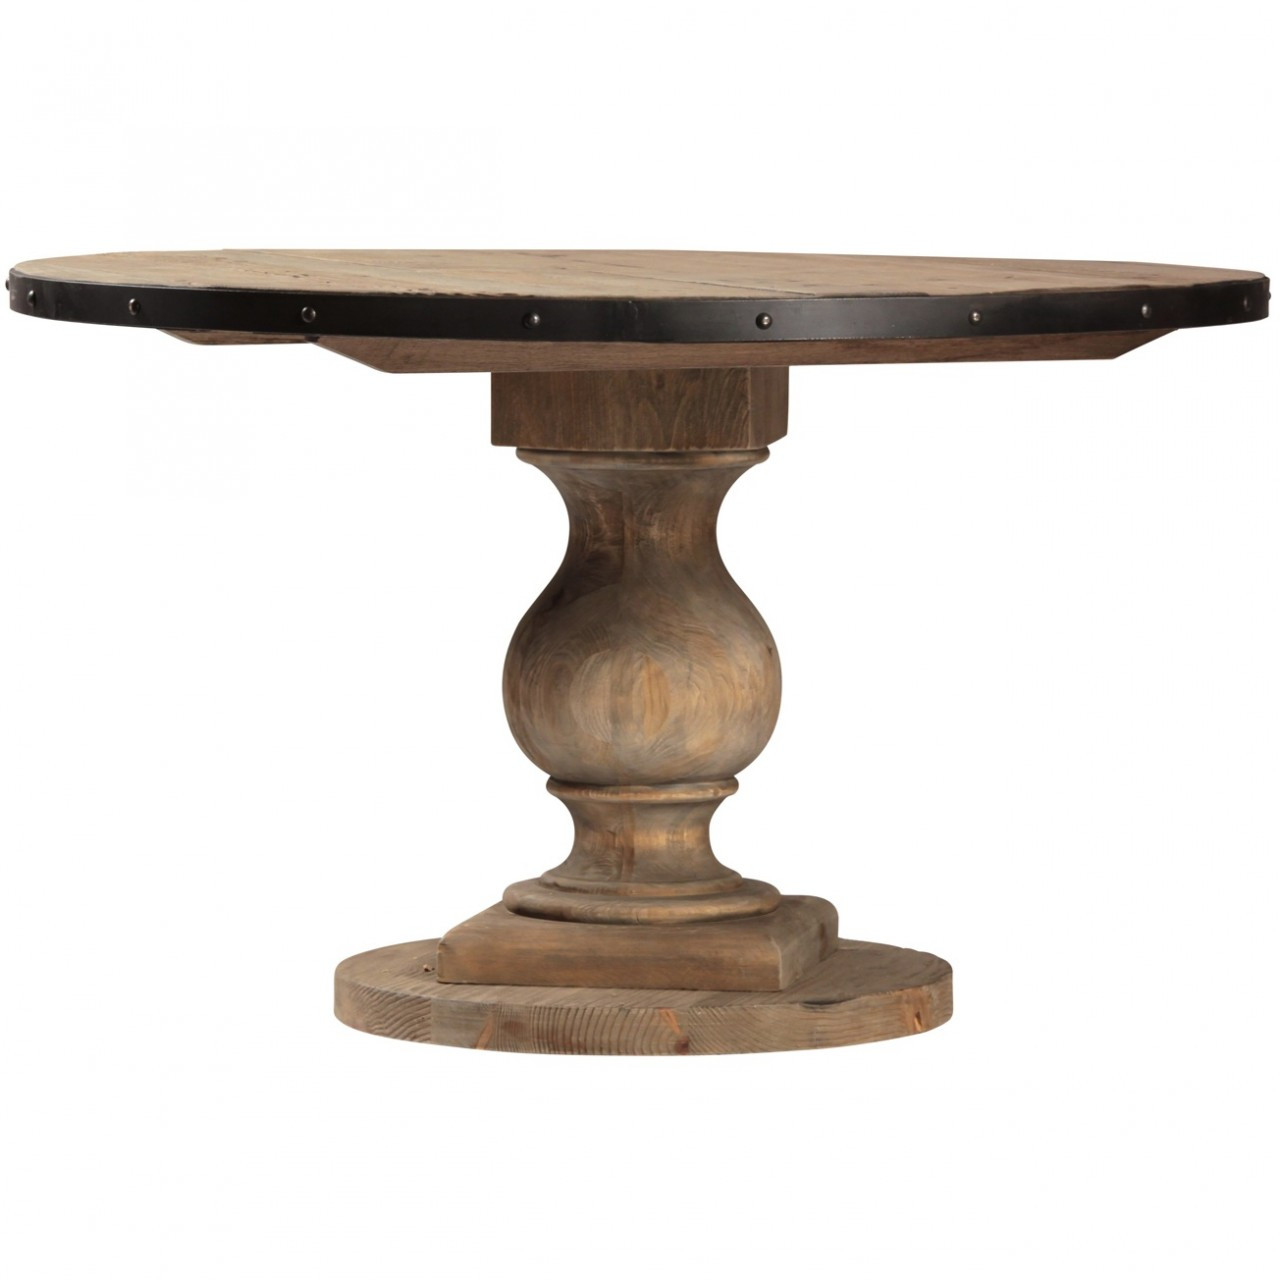 Dining table dining table pedestals base - Pedestal kitchen tables ...